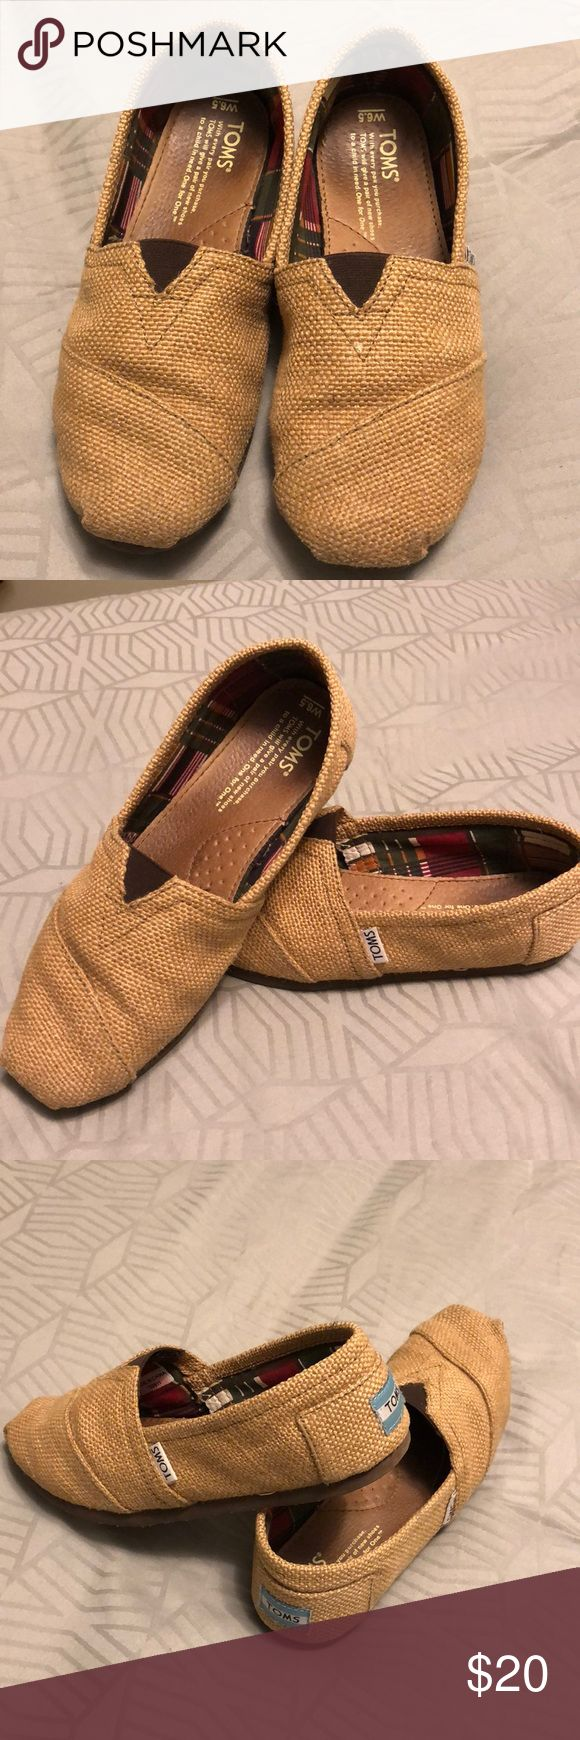 Burlap TOMS Shoes! Tan burlap TOMS shoes Slightly worn, great condition - no rips, tears, stains Fun plaid interior fabric So comfortable!! Toms Shoes Flats & Loafers